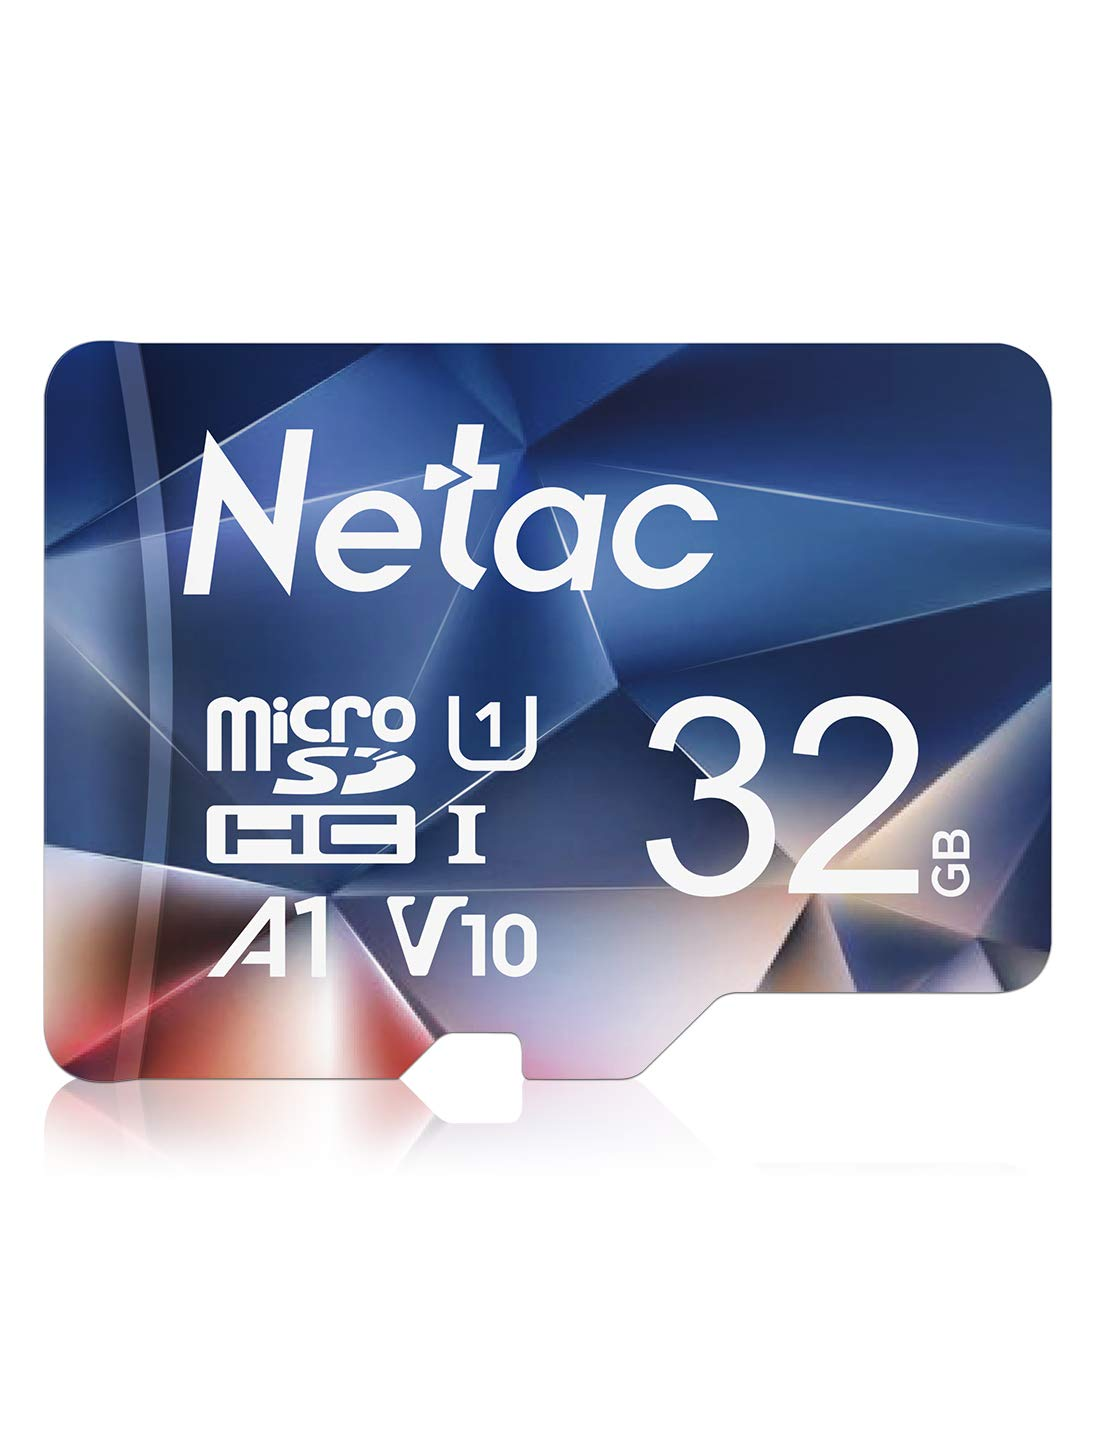 Great SD card with great price